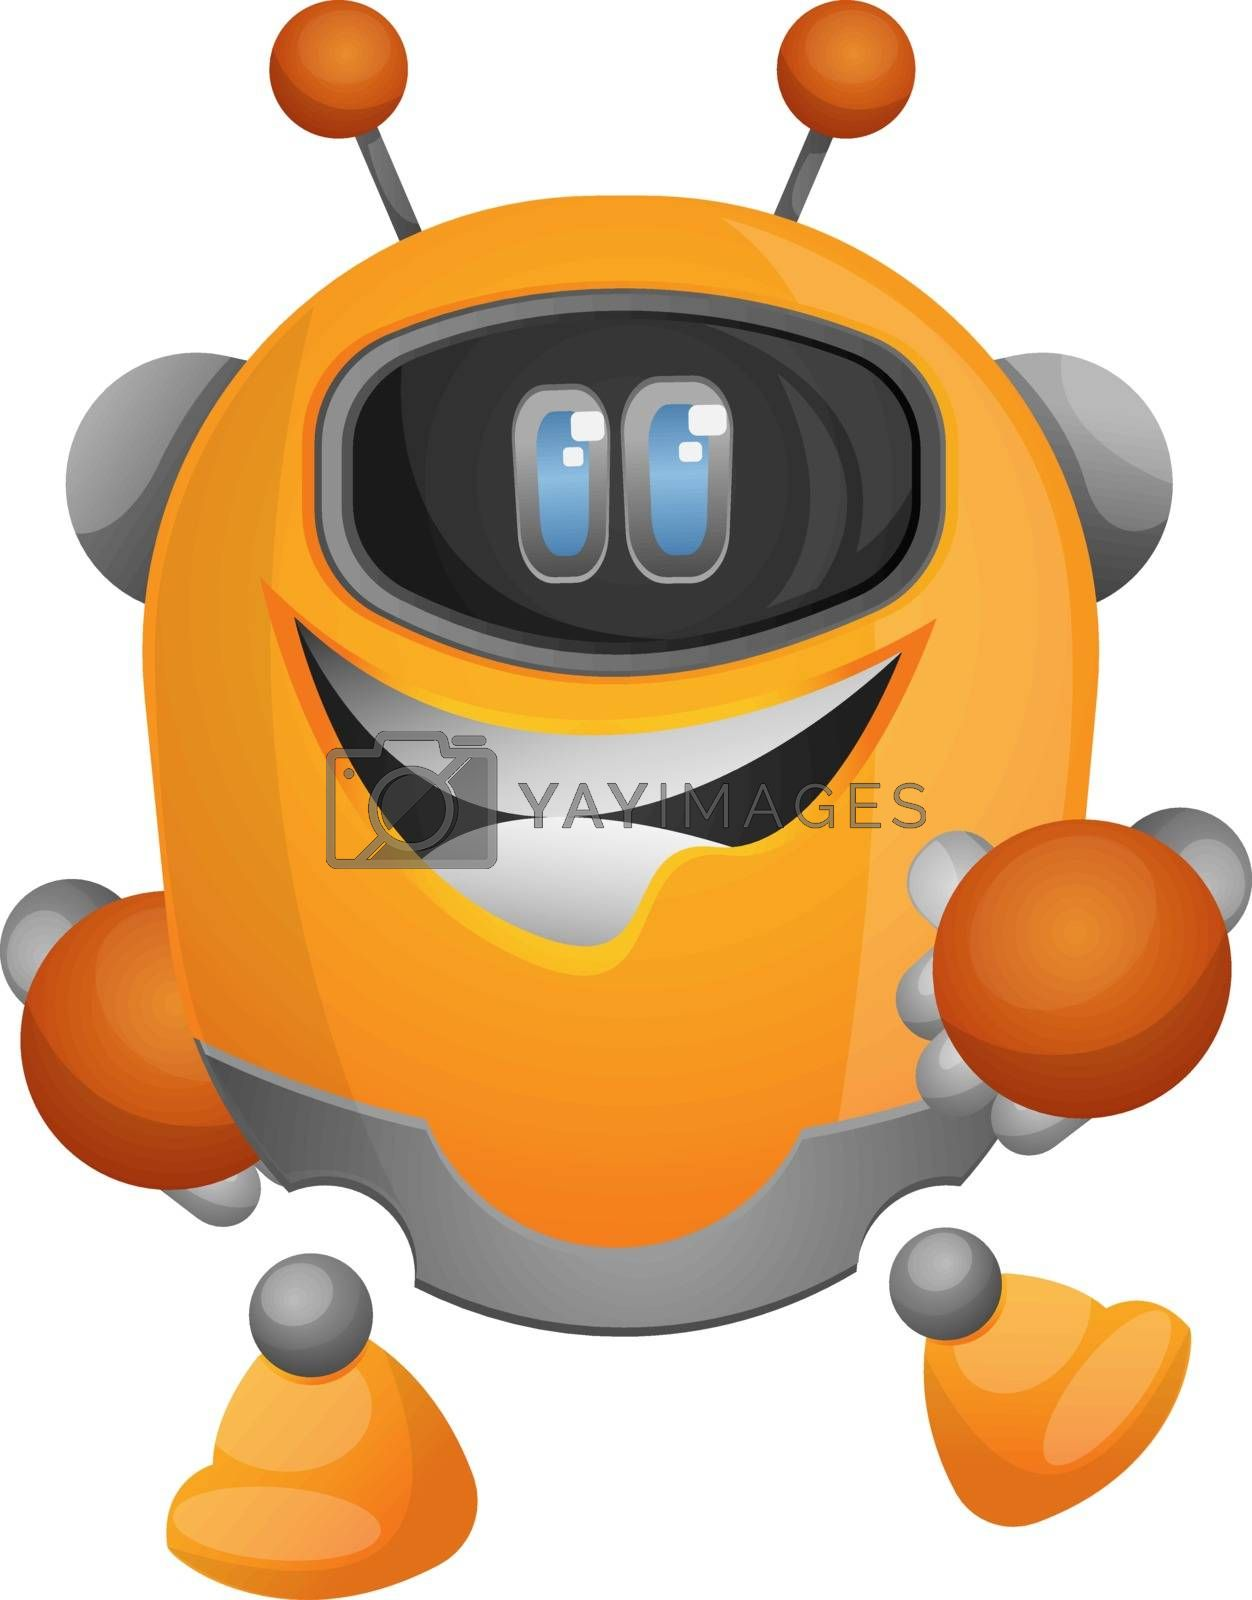 Royalty free image of Cheerful cartoon robot illustration vector on white background by Morphart